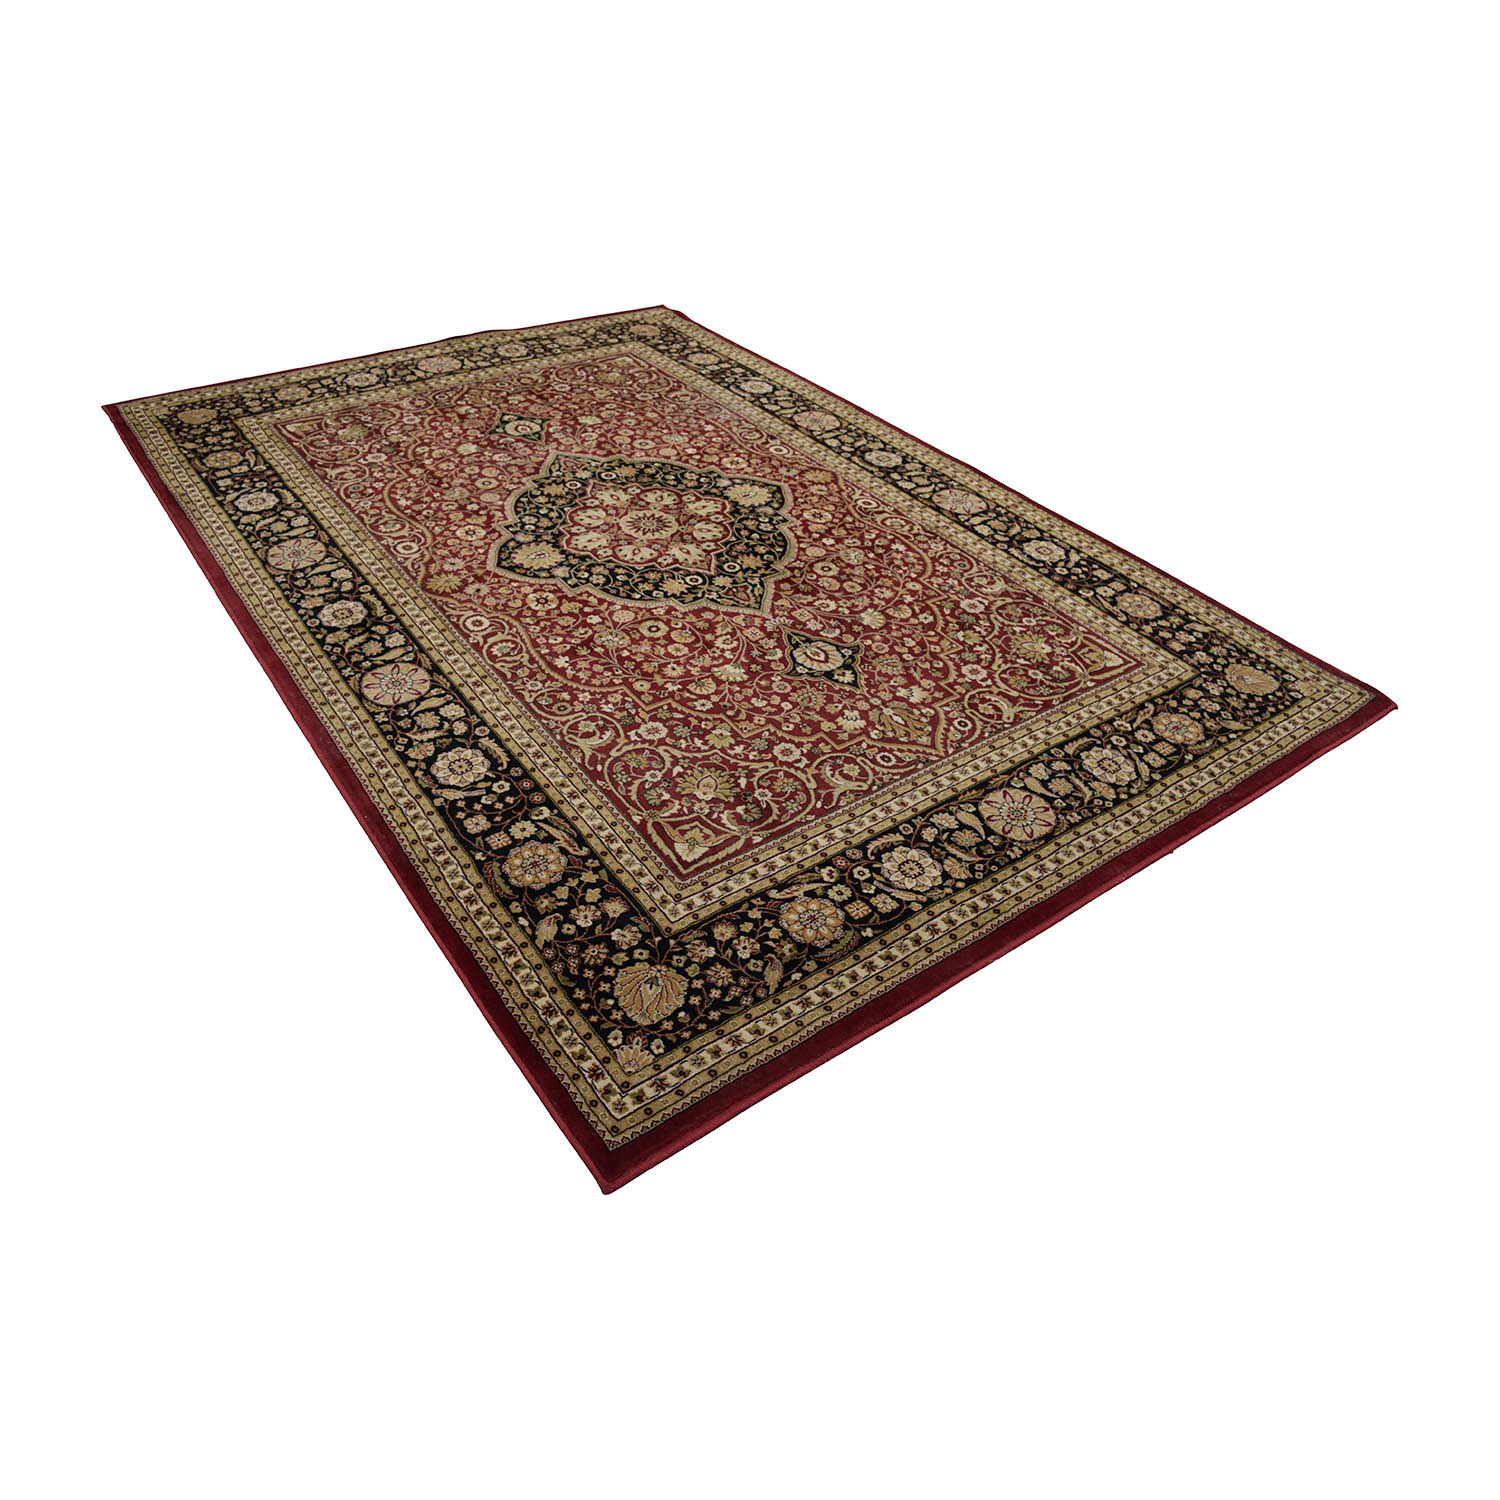 Oriental Red Black and Beige Rug / Decor